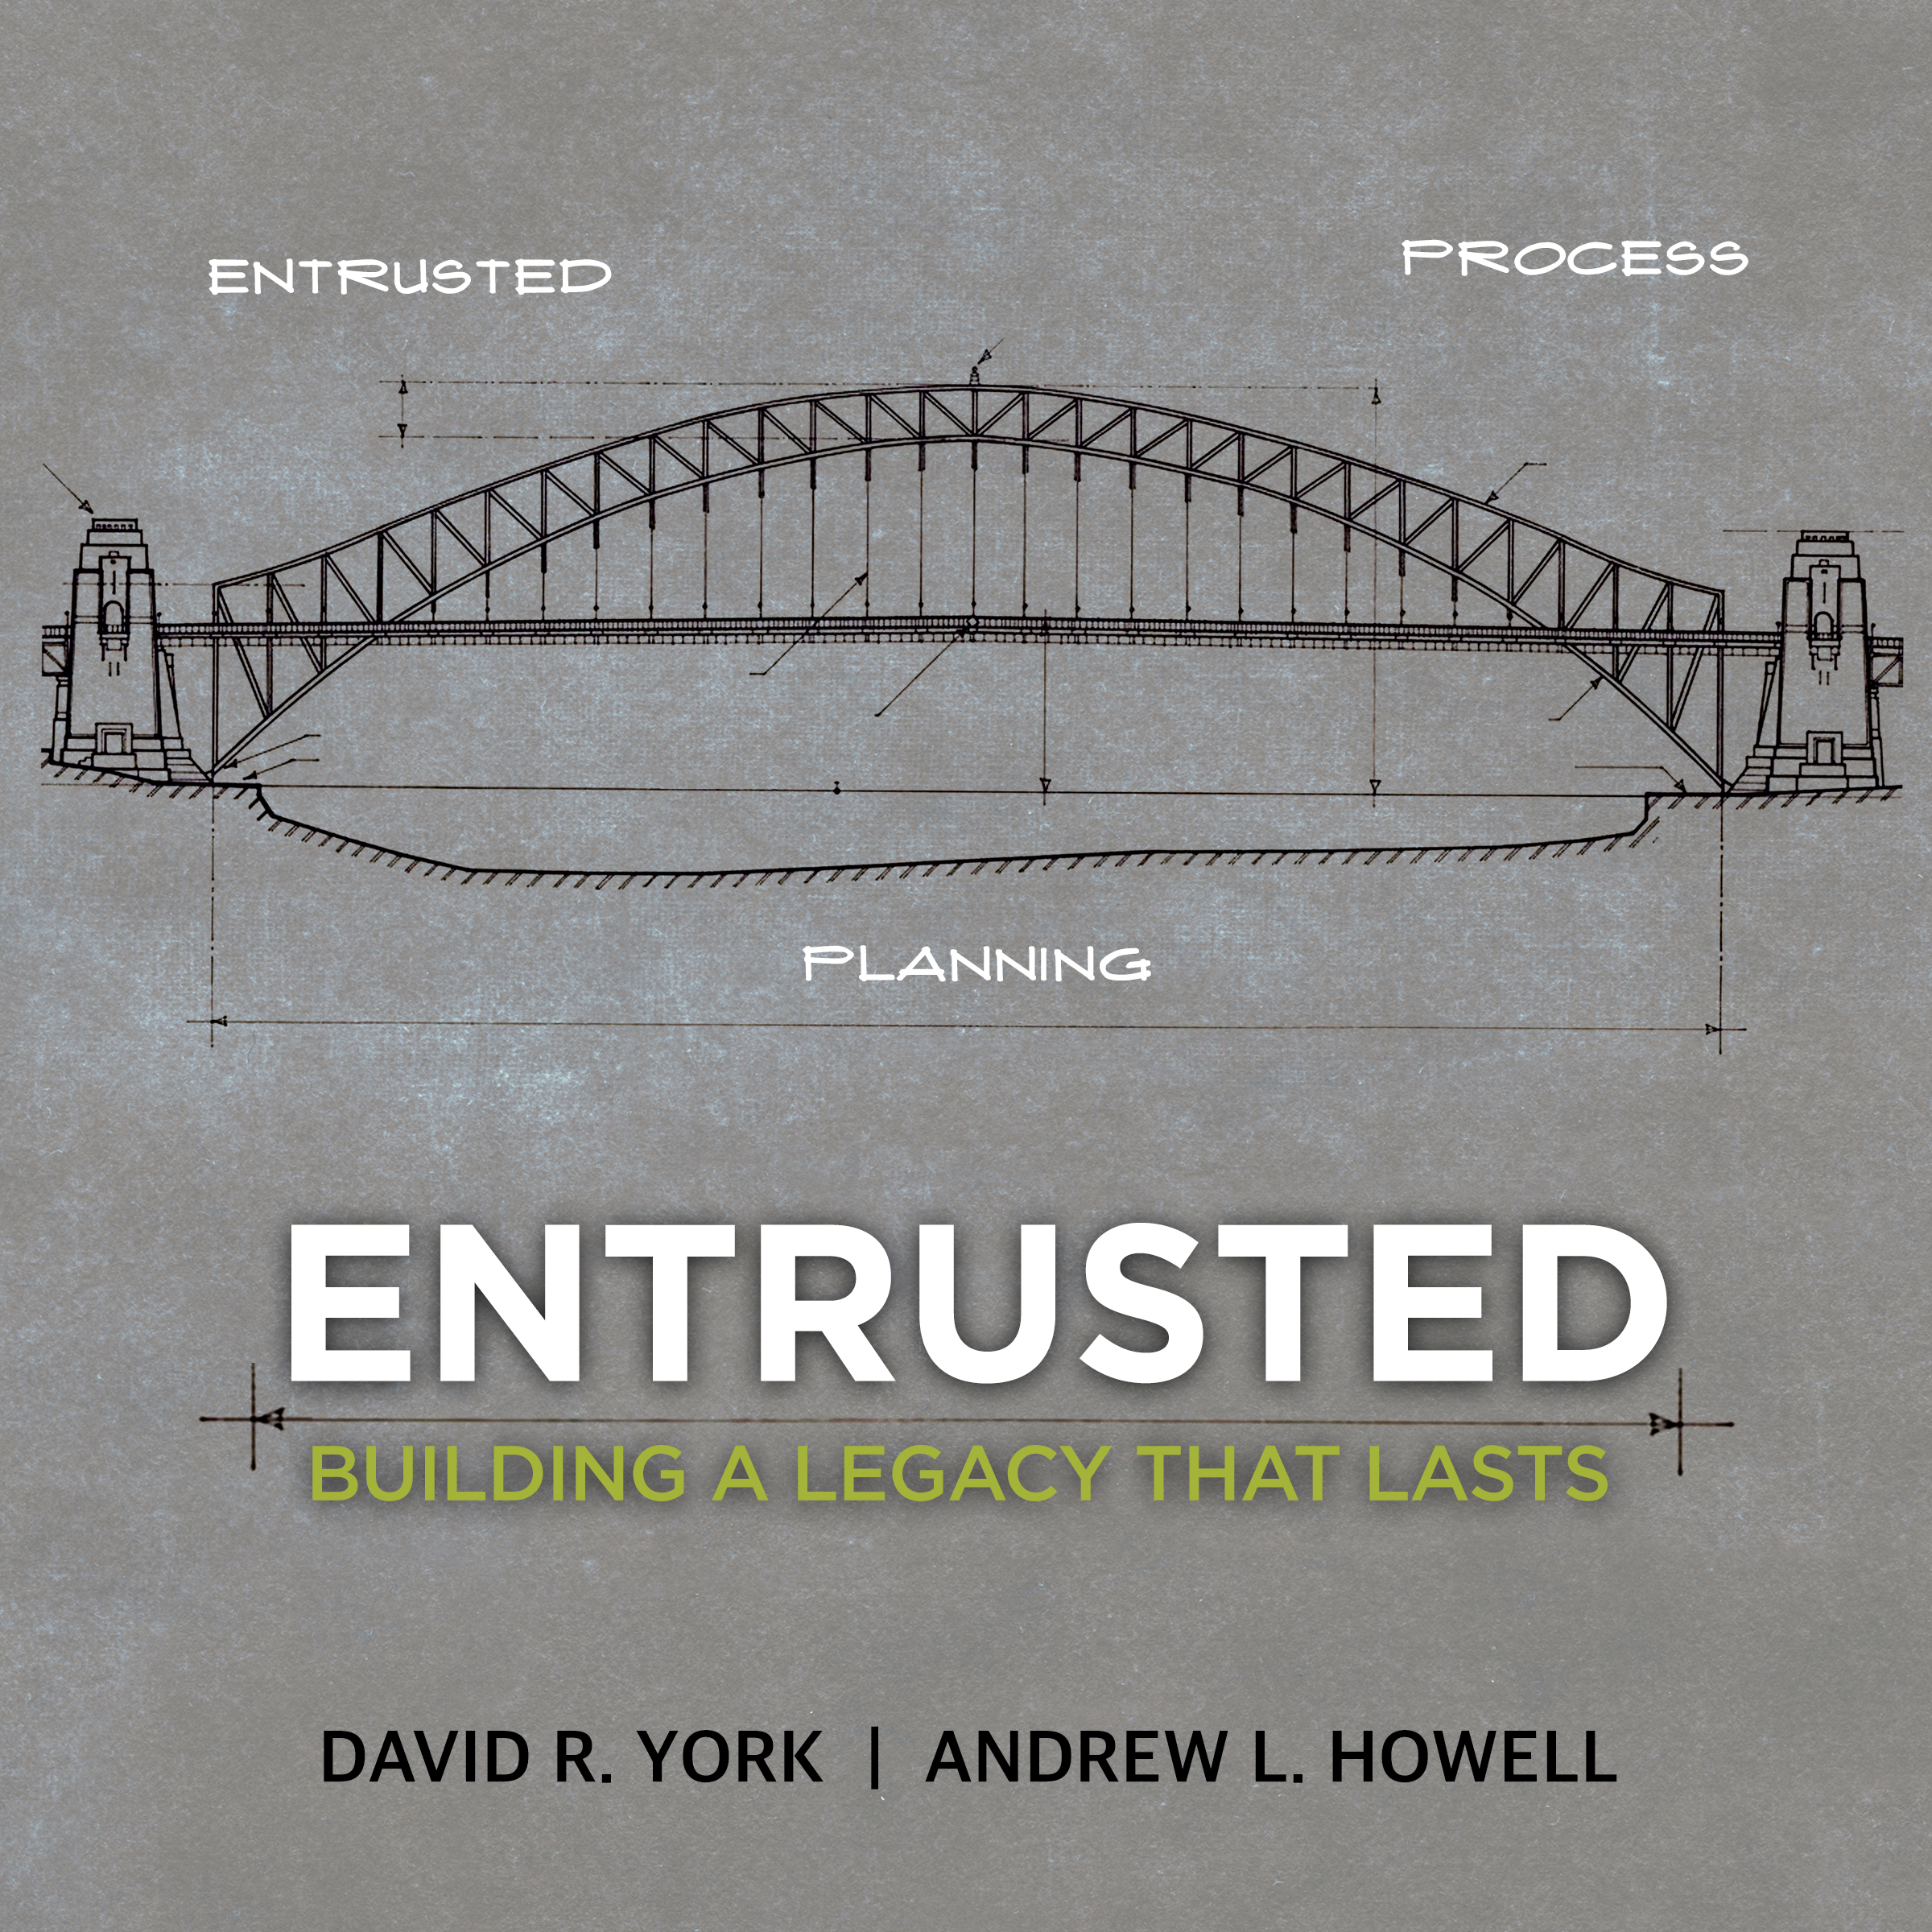 Entrusted: Building a Legacy That Lasts - by David R. York and Andrew L. HowellEntrusted outlines seven core disciplines that have been utilized by successful high-net-worth families going back hundreds of years. These are not hypothetical or idealistic disciplines – they are real and have stood the test of time.Click here to purchase at Amazon.com.